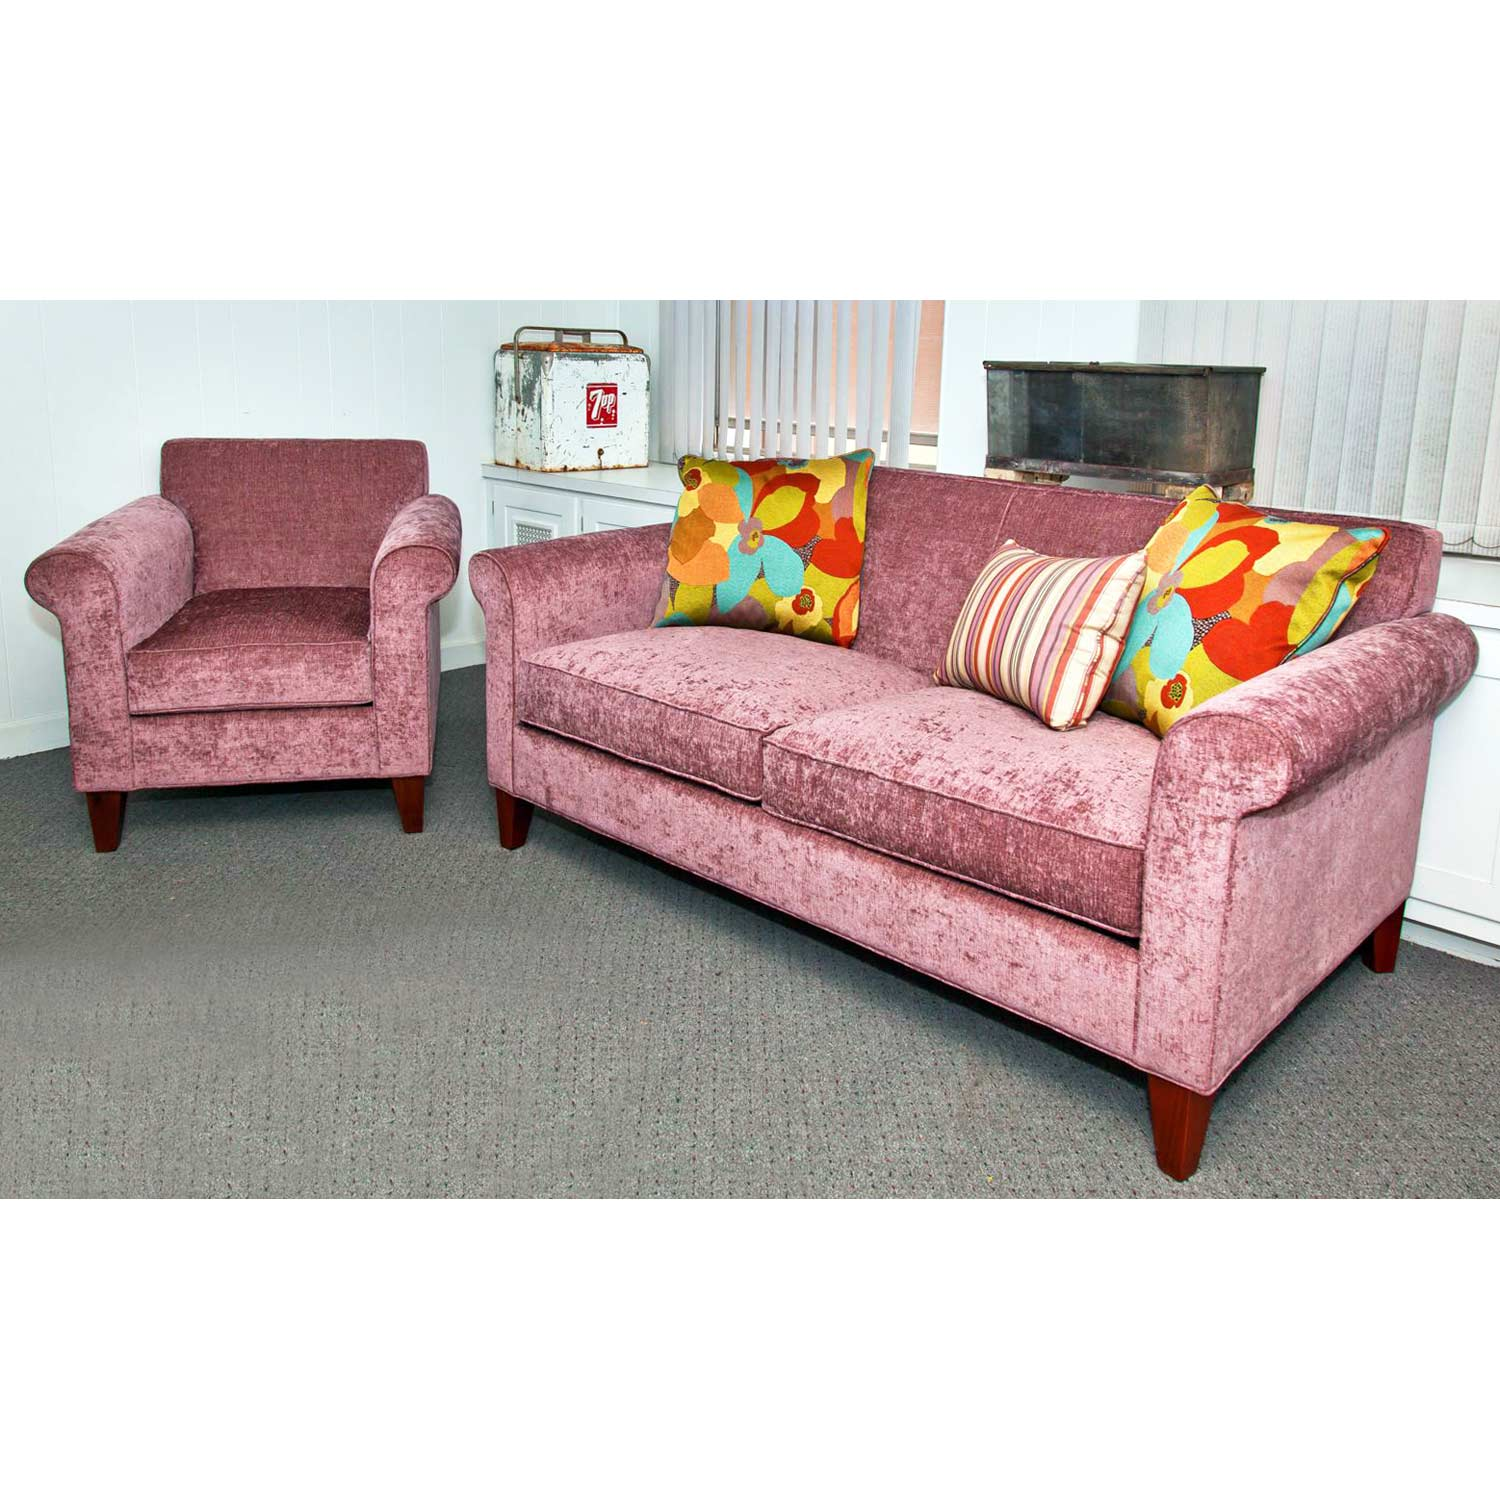 Katie velvety rolled arm sofa xanadu wild orchid dcg for Wild orchid furniture